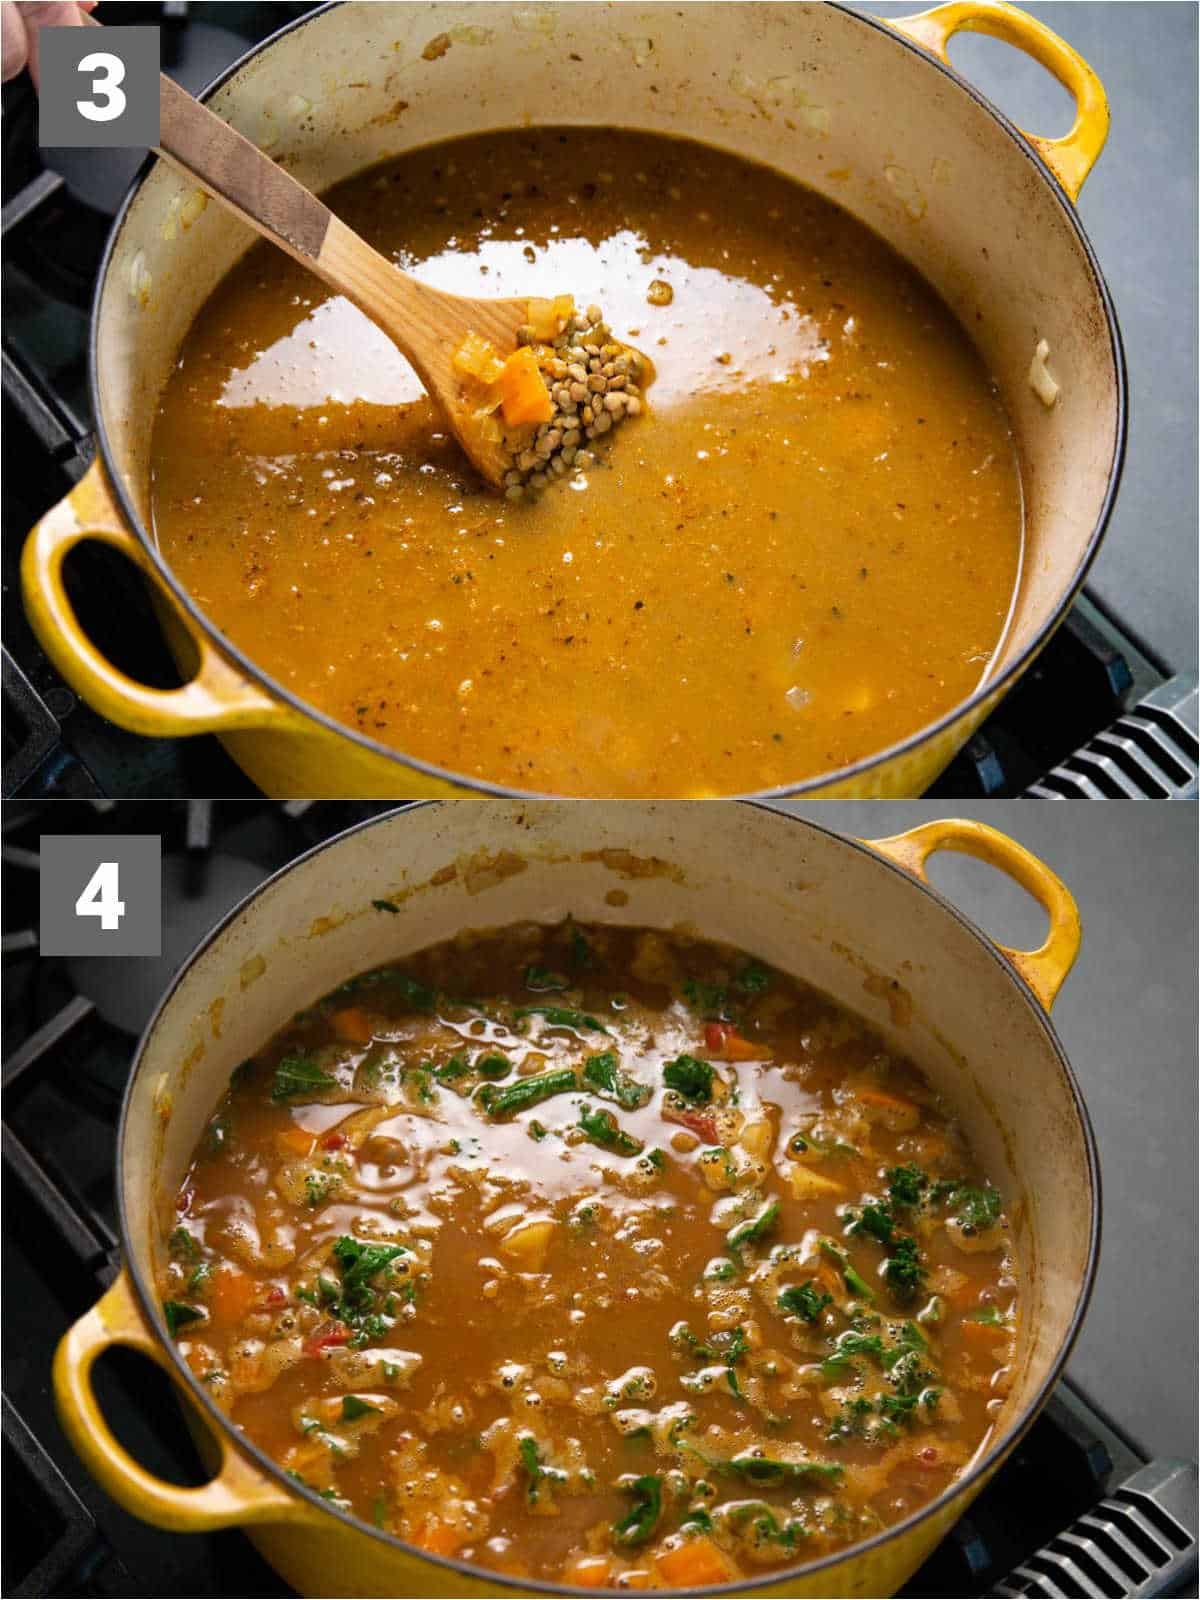 cook the lentils in the broth to soften them for 15 minutes